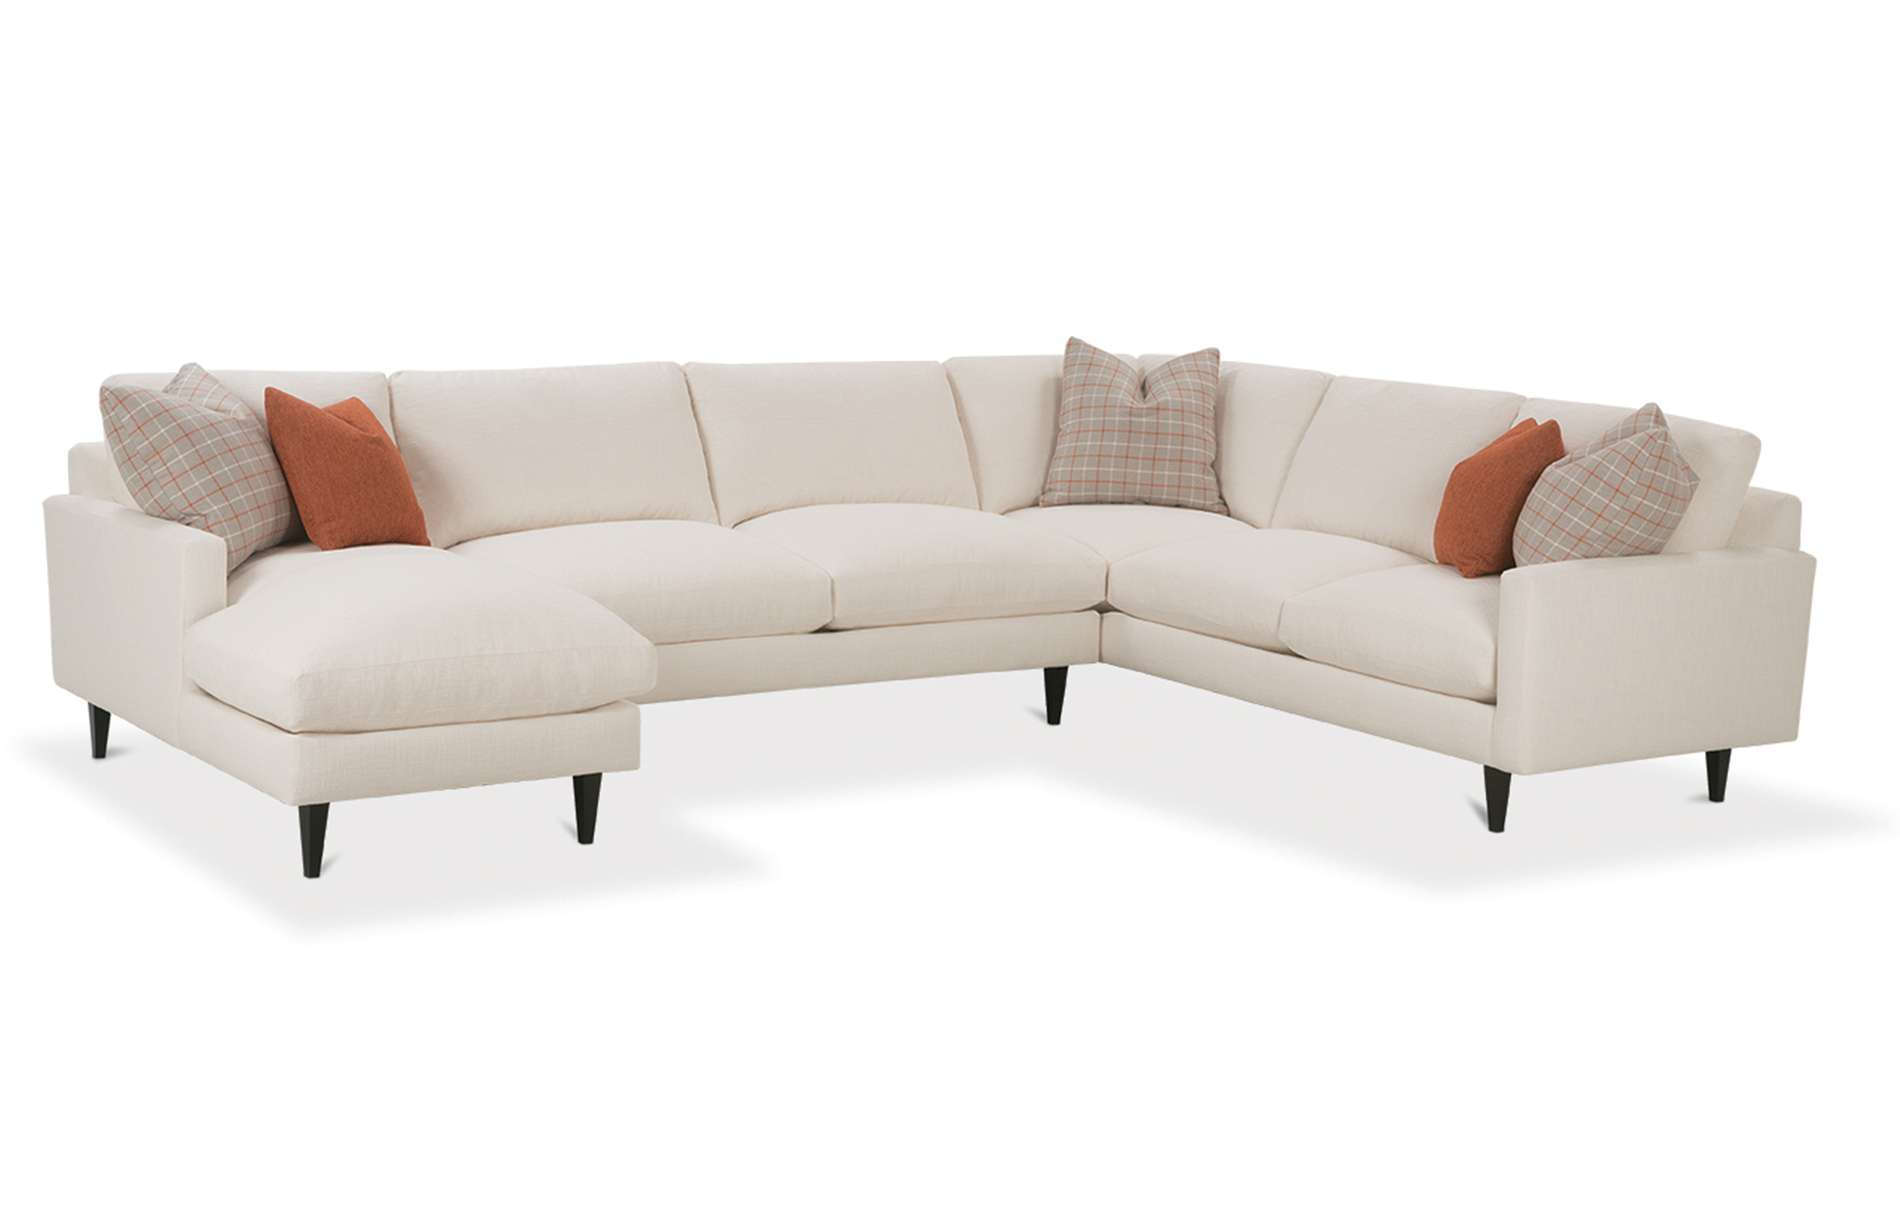 Furniture - Living Room - Sofas3